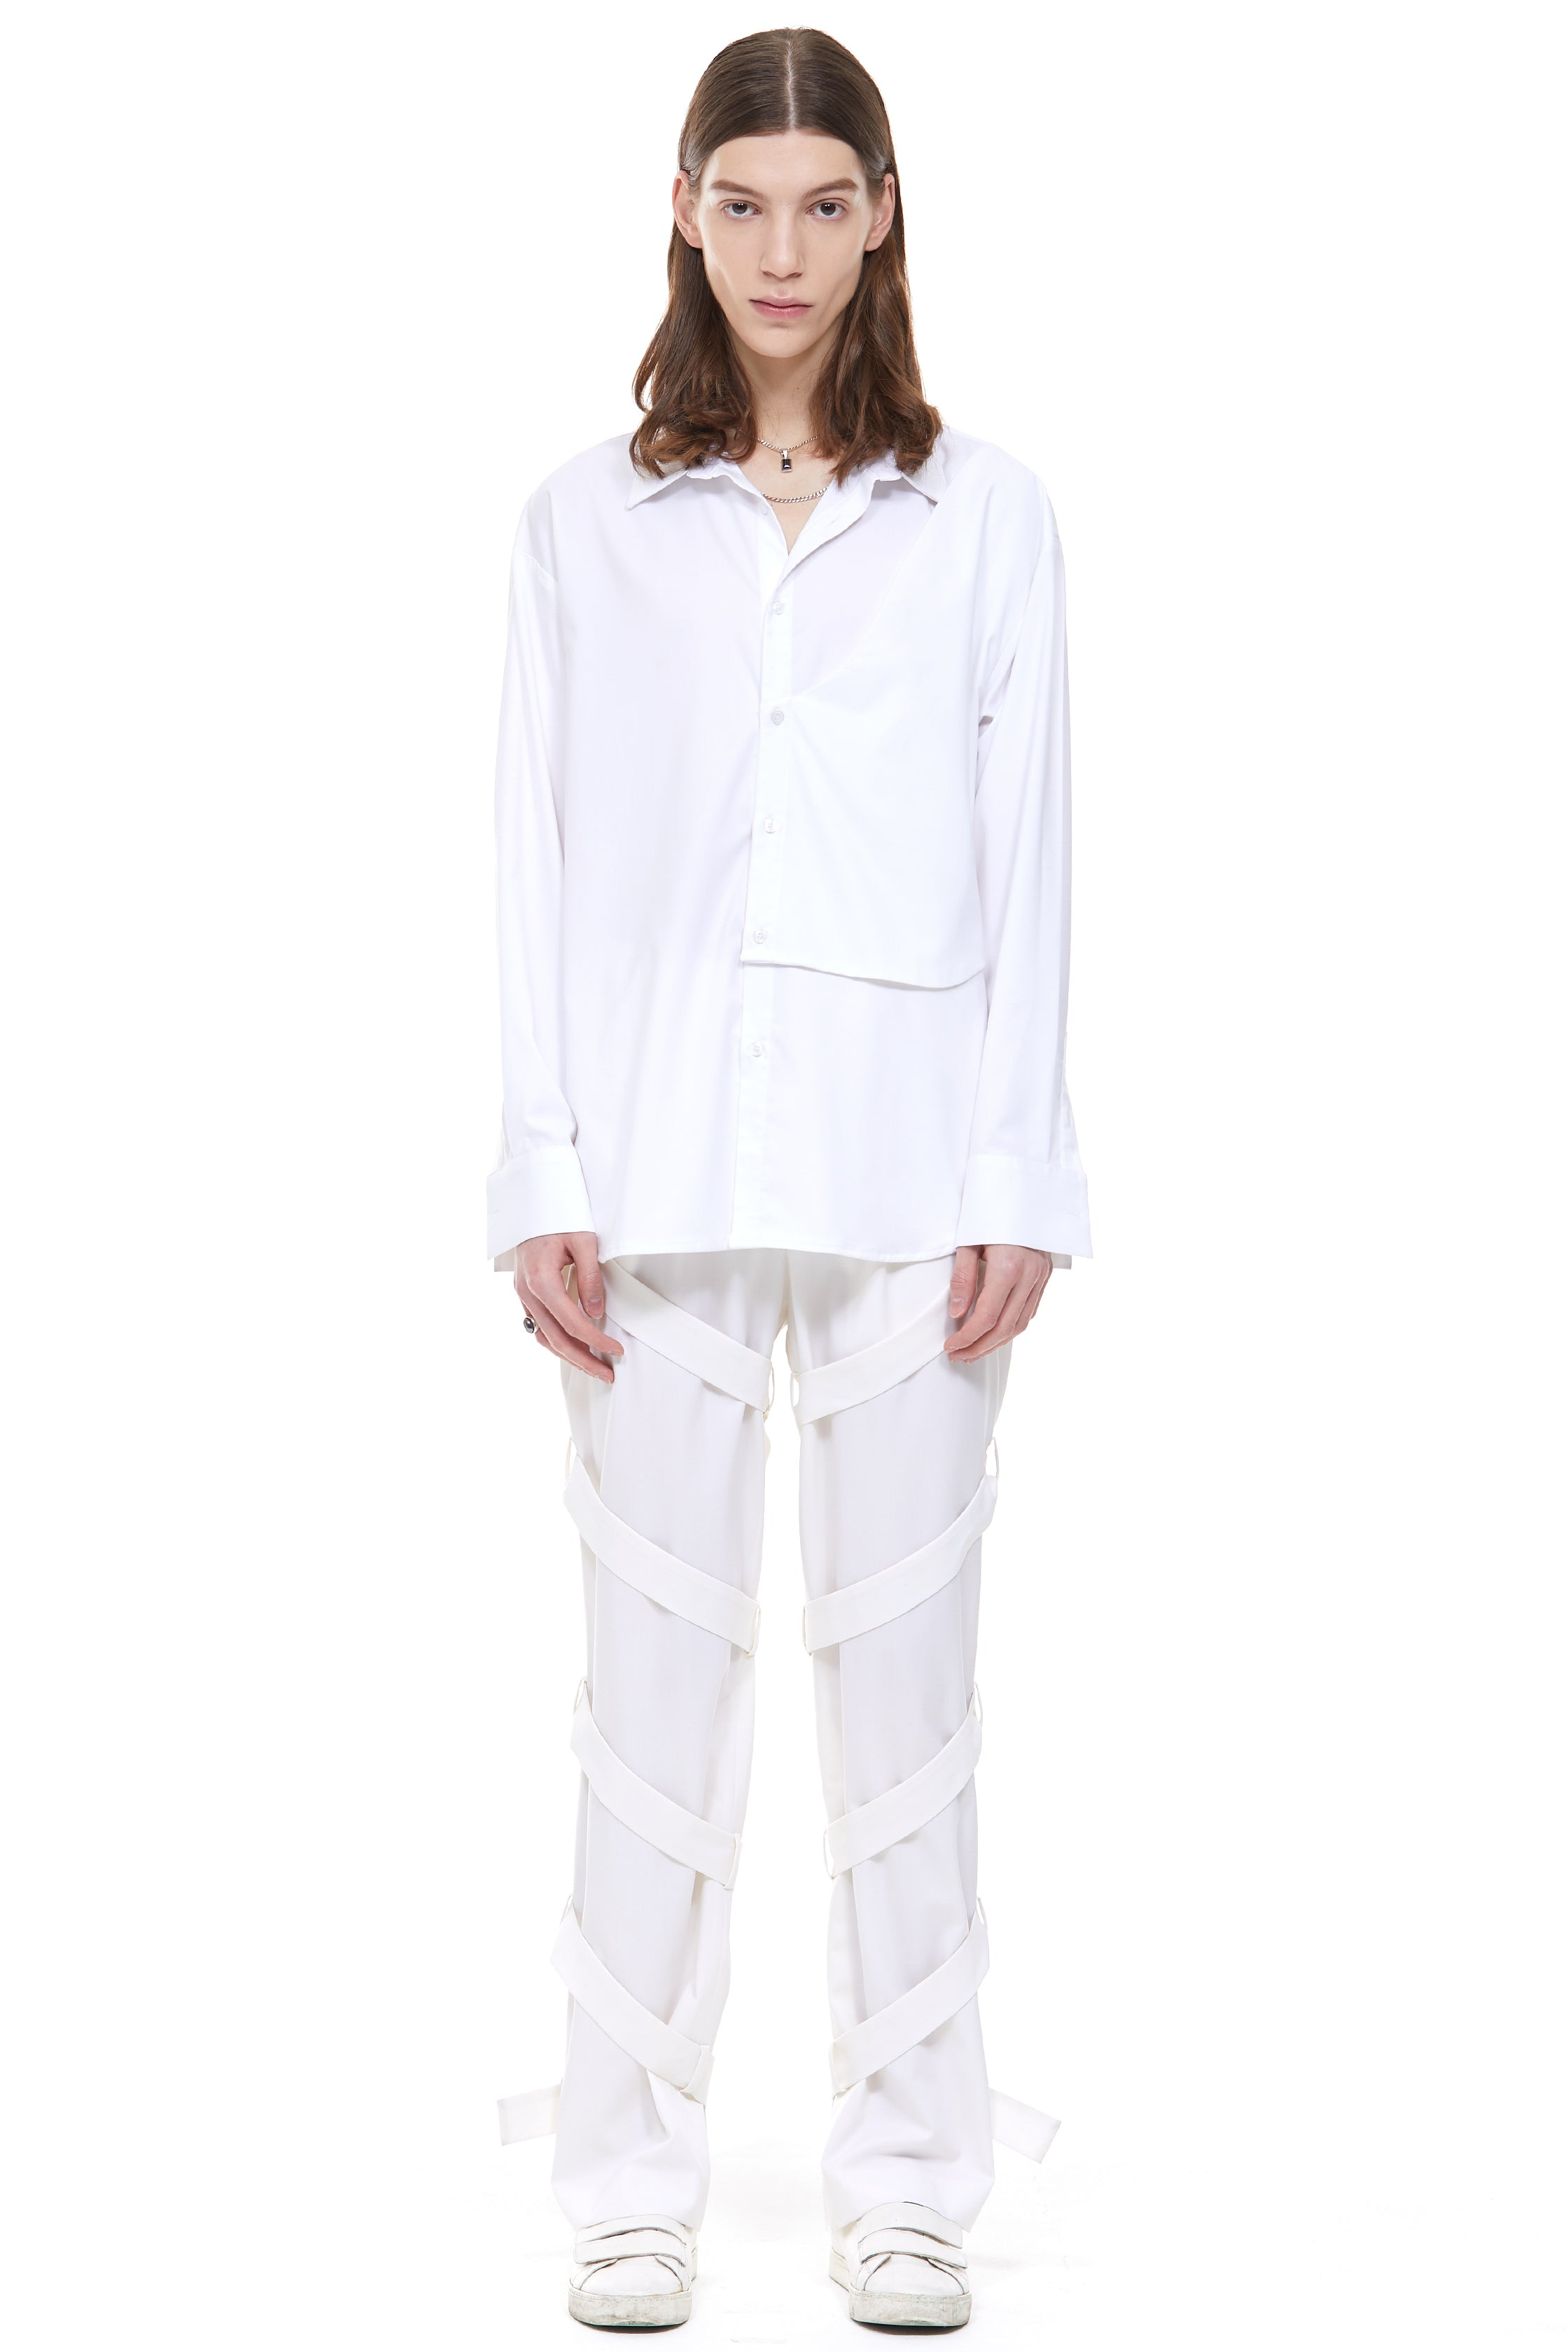 Belted Longwide Pants in Ivory (Made-to-Order)